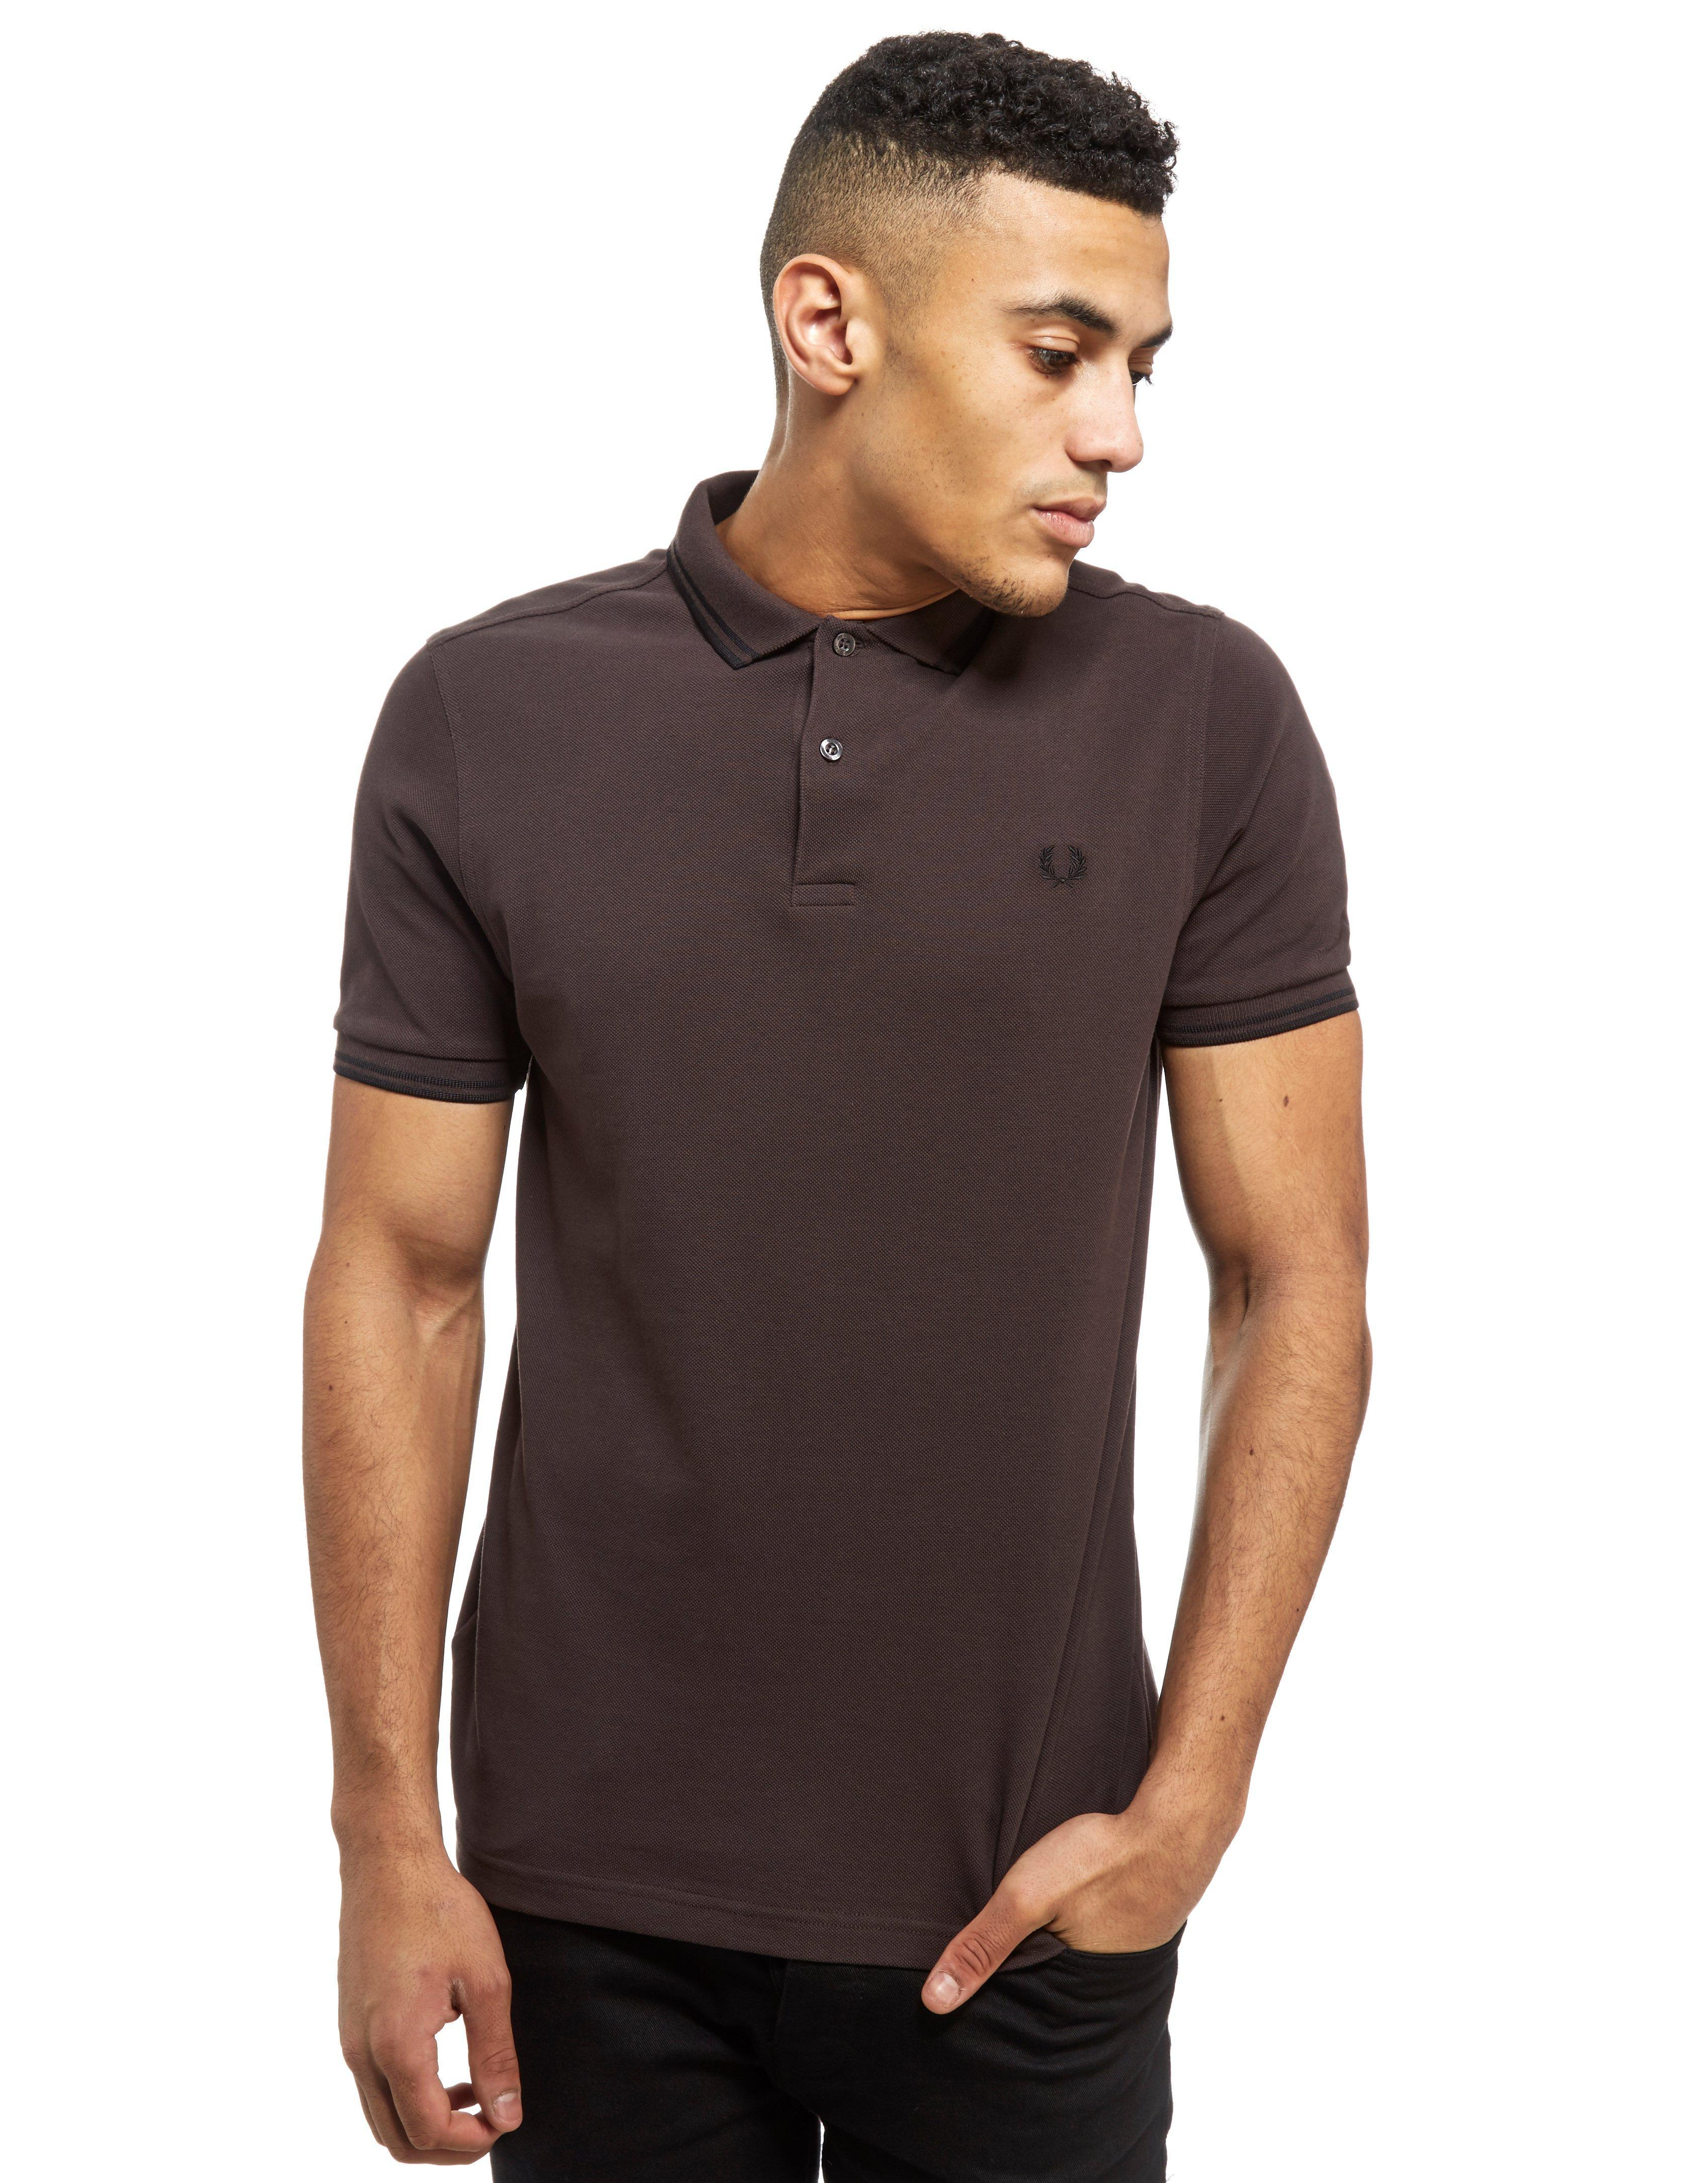 lyst fred perry twin tipped short sleeve polo shirt in brown for men. Black Bedroom Furniture Sets. Home Design Ideas